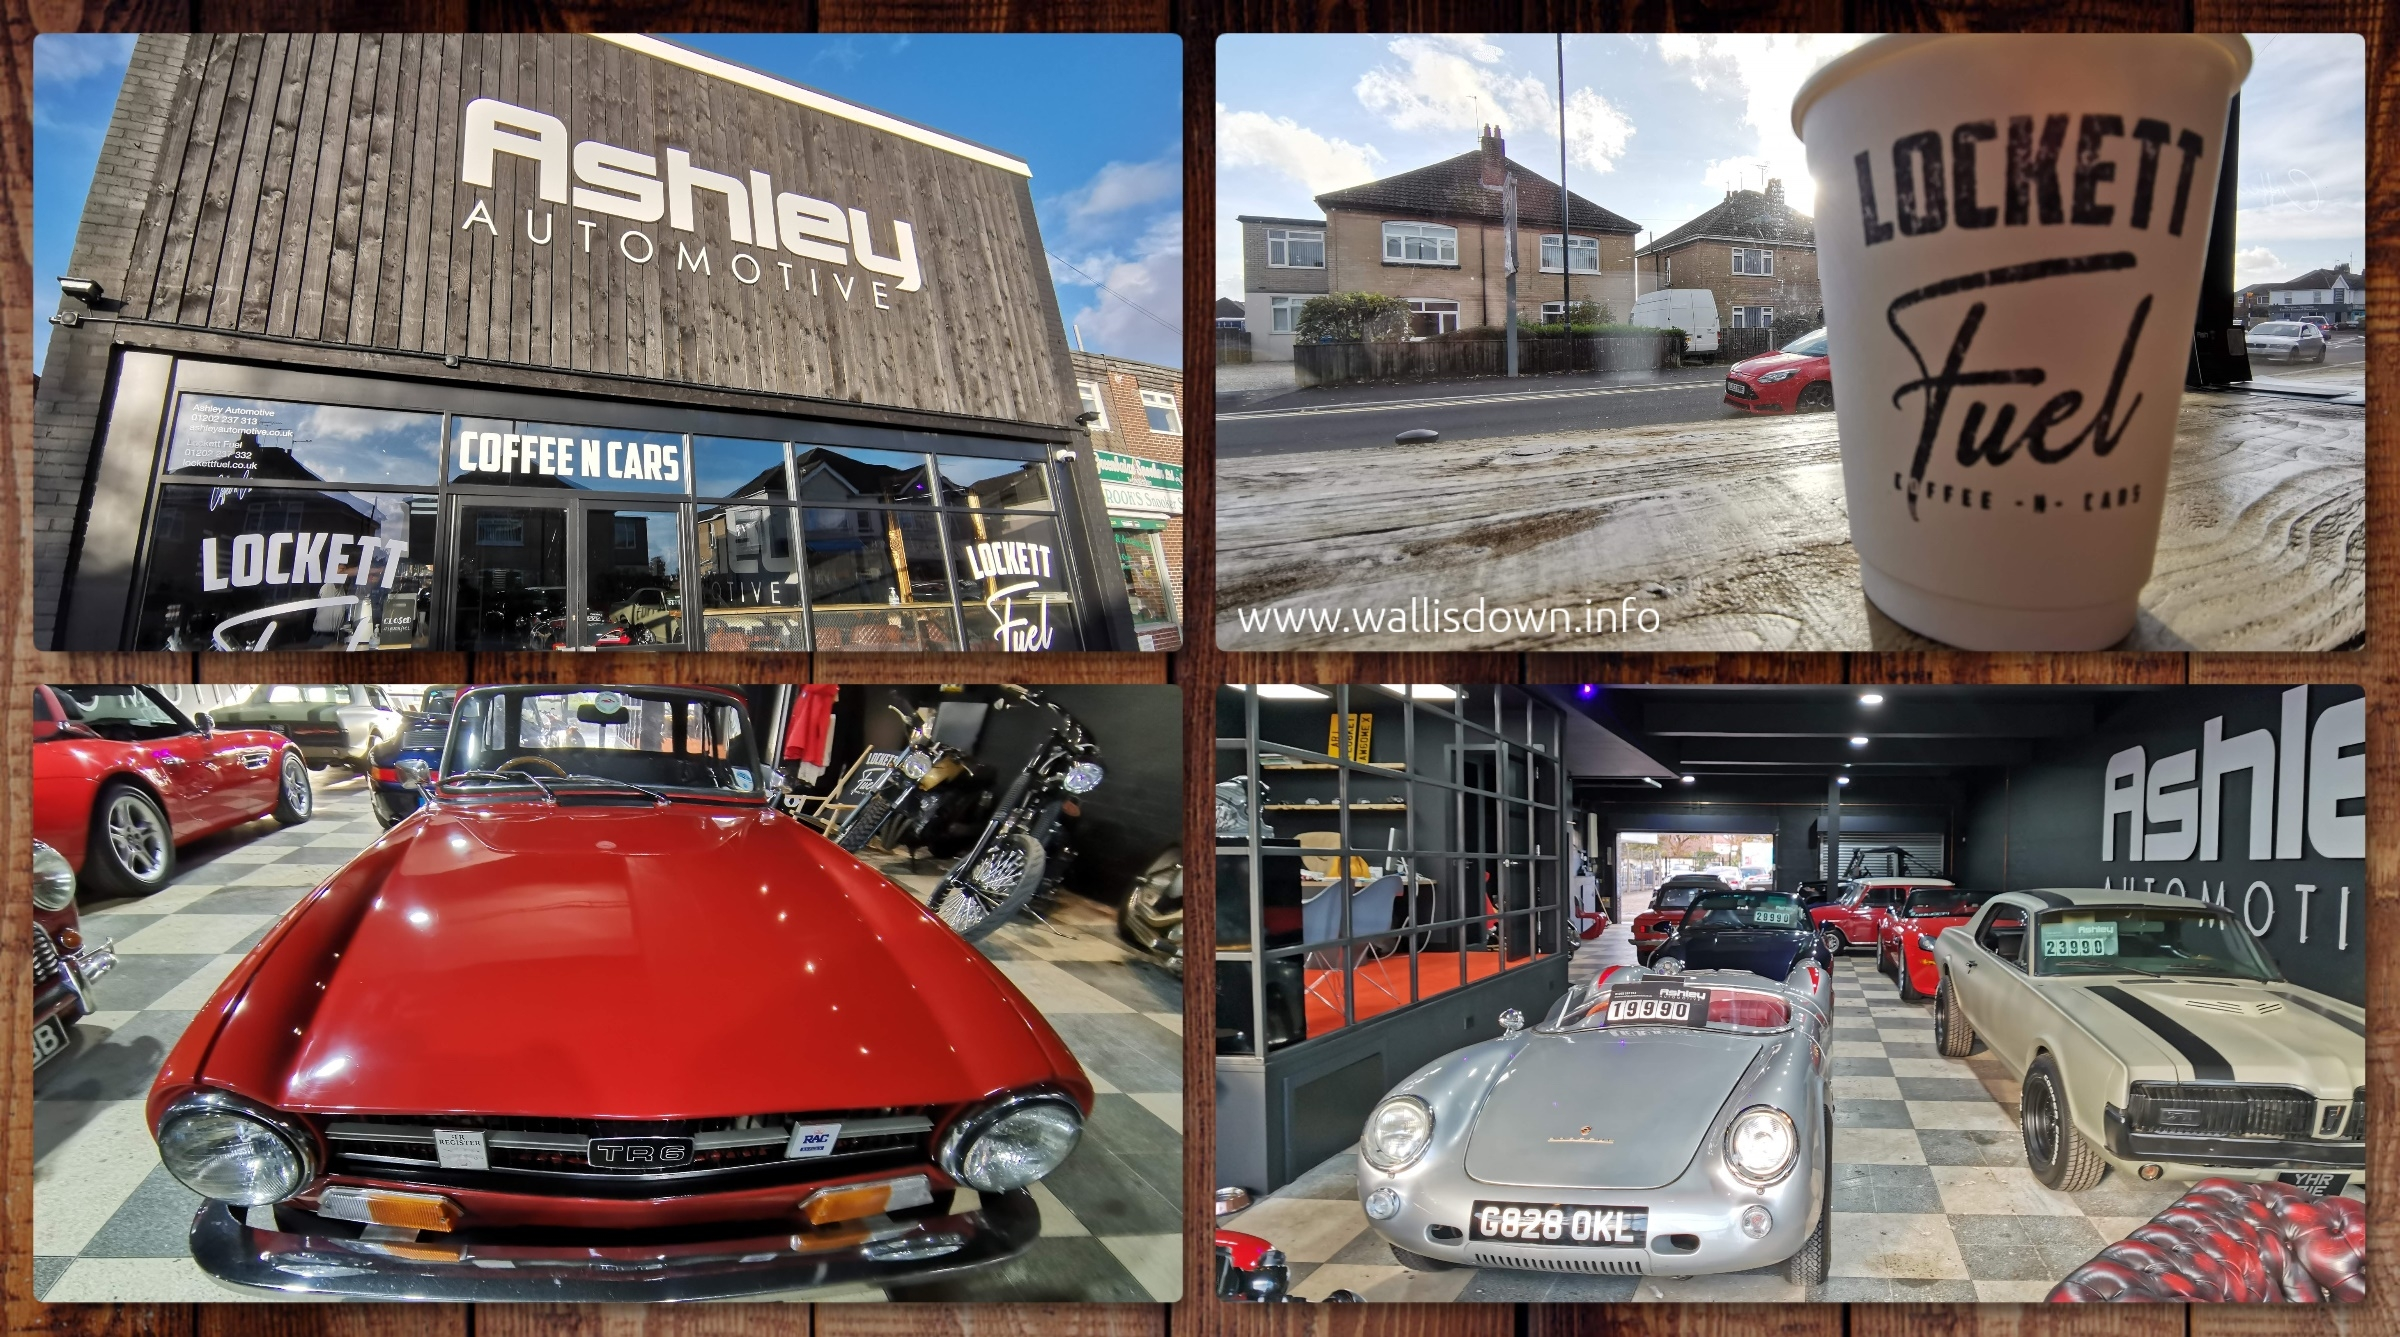 Coffee and Cars - a look around Ashley Automotive